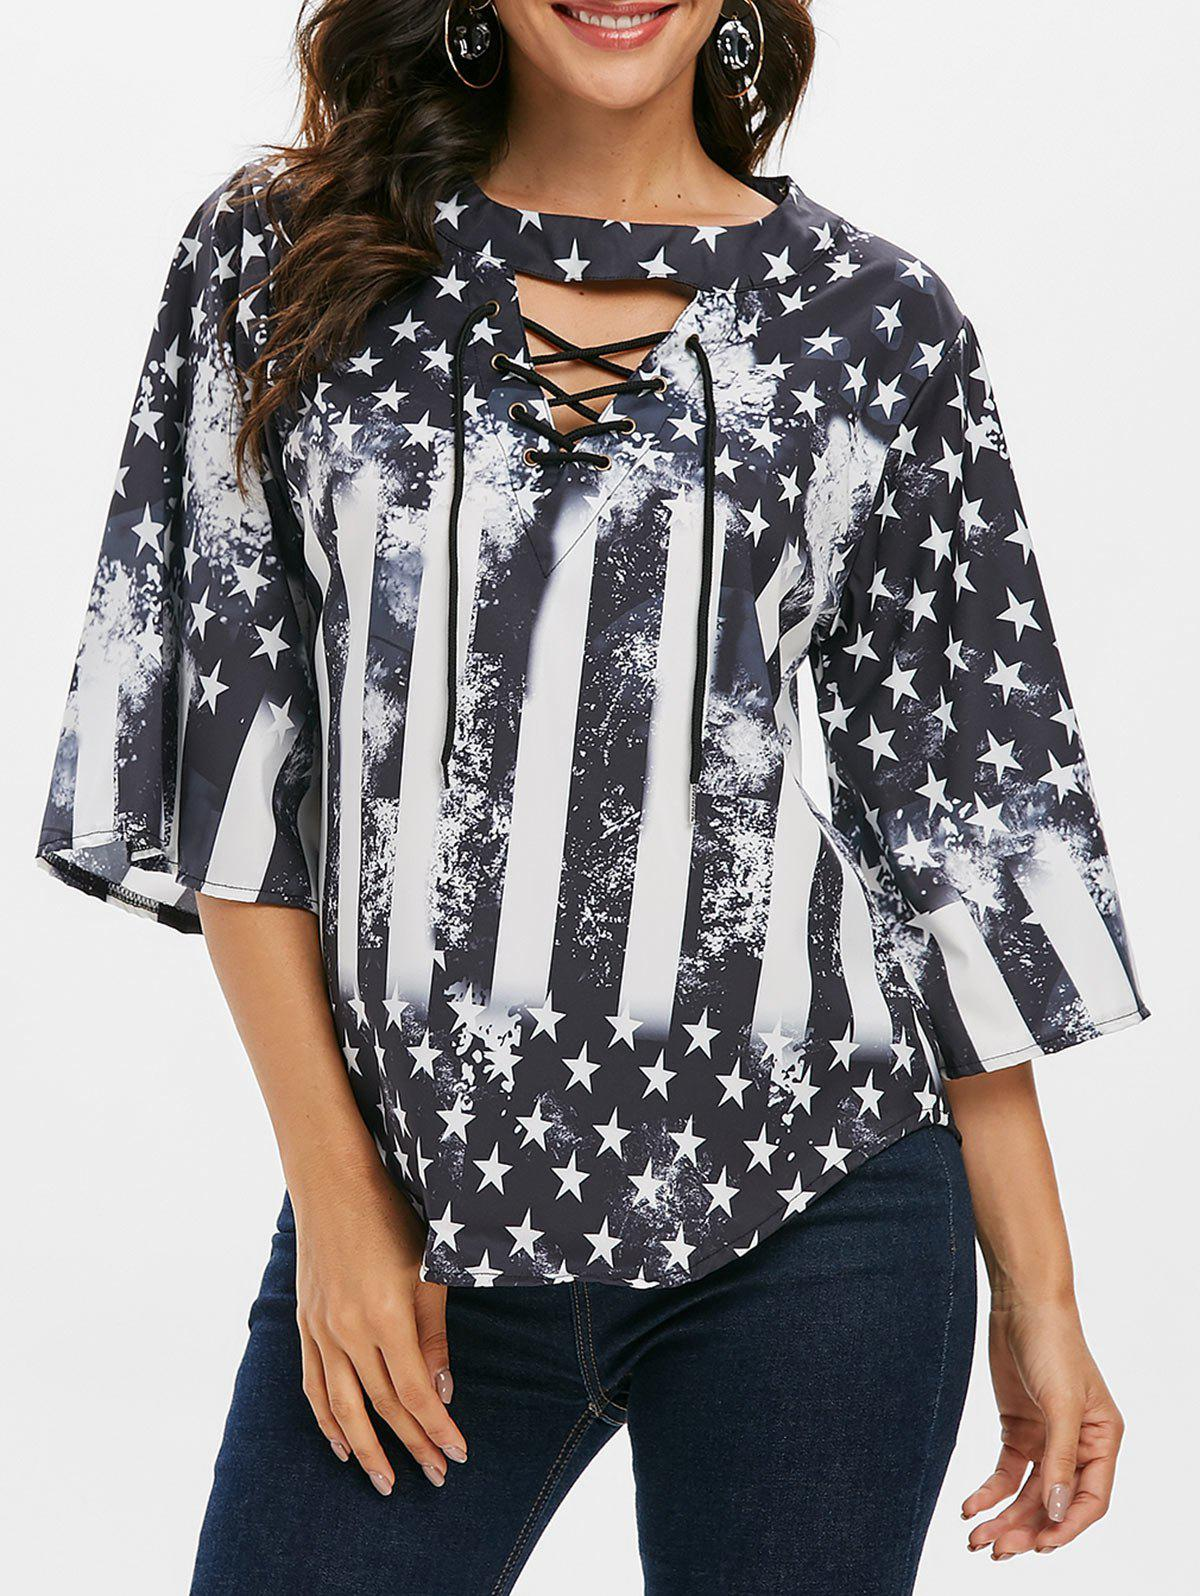 Hot American Flag Cutout Lace Up T-shirt